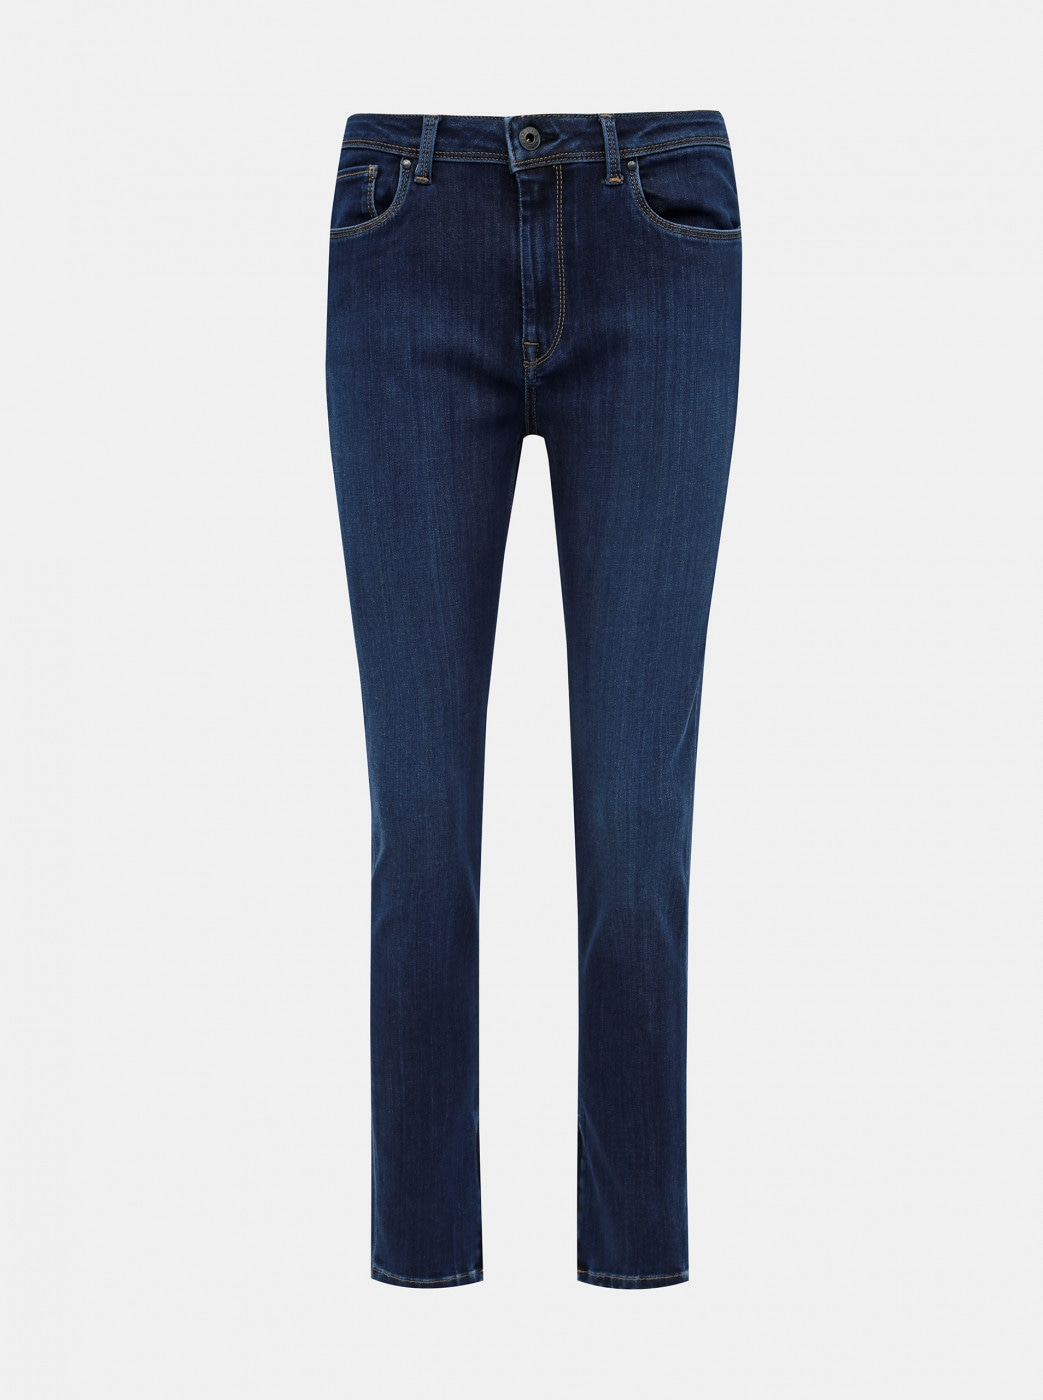 Dark Blue Women's Skinny Fit Jeans Pepe Jeans Cher High